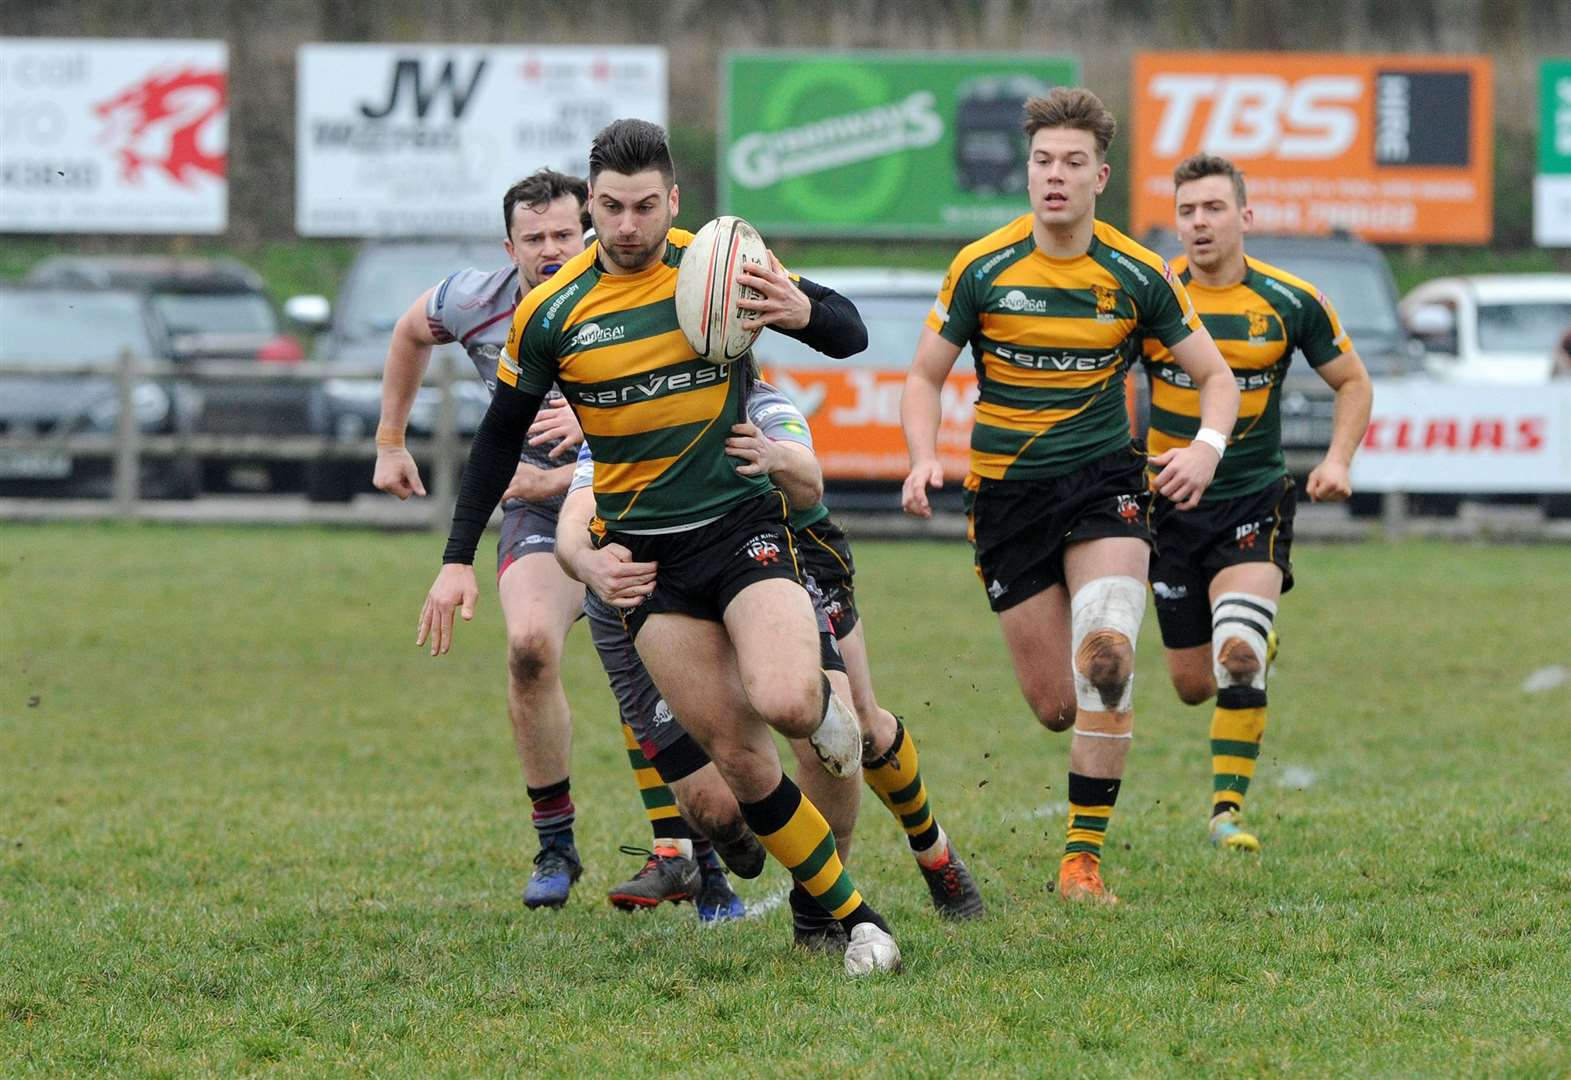 Bury St Edmunds lose 21–18 away to Henley in the National League 2 South